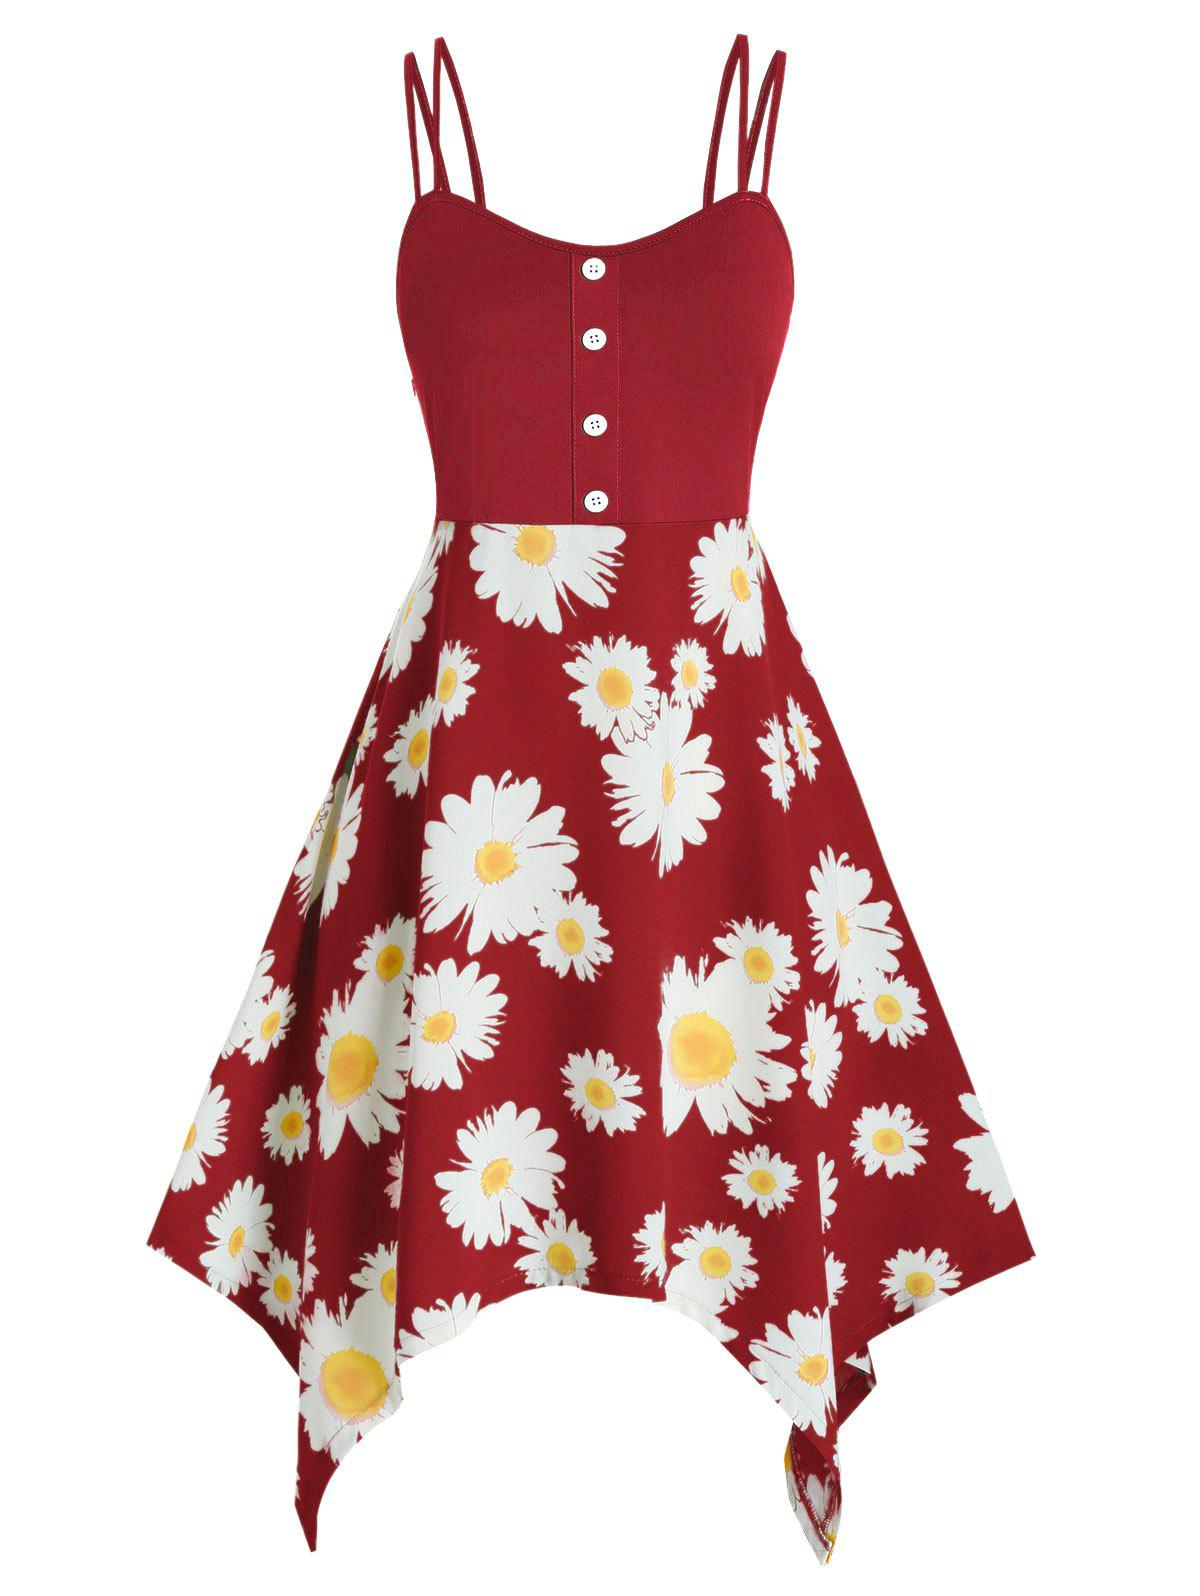 Plus Size Daisy Flower Handkerchief Dual Strap Dress - RED 5X